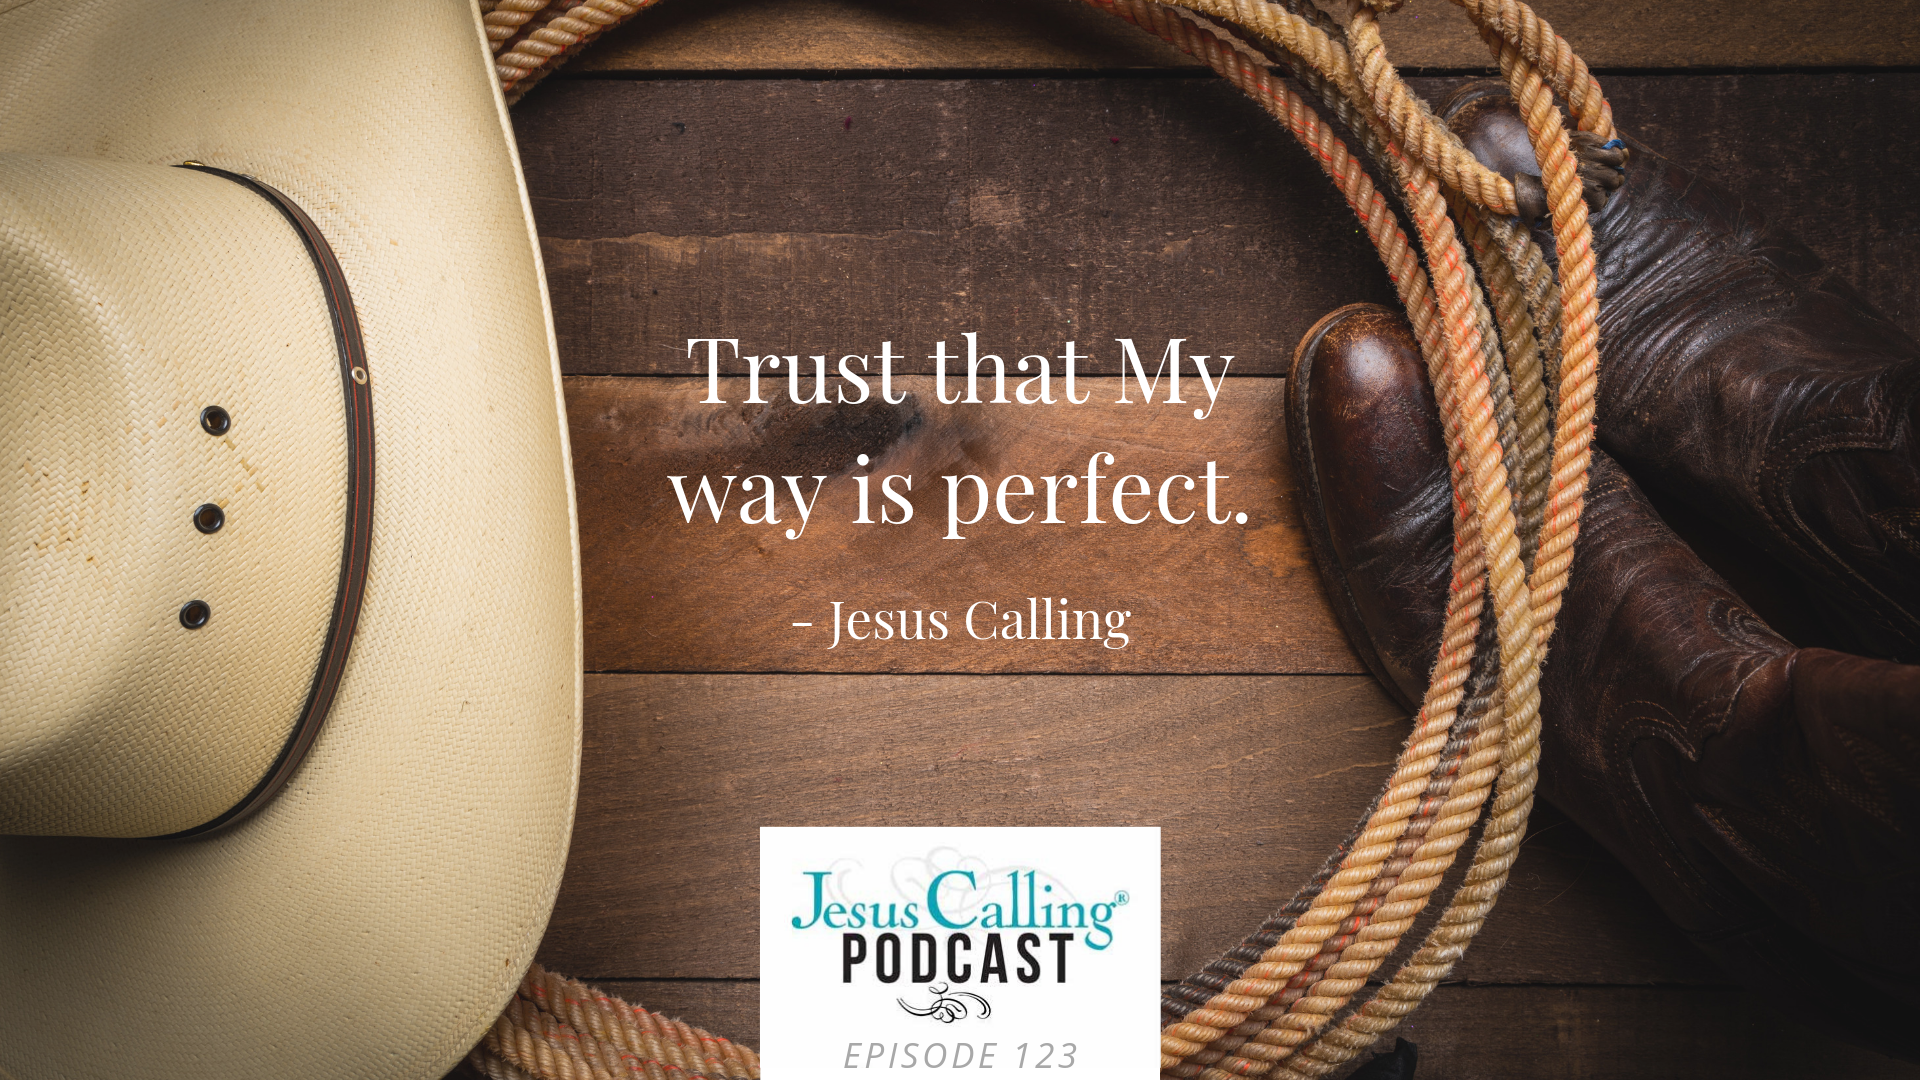 Jesus Calling podcast featuring Aaron Watson & Anthony Lucia